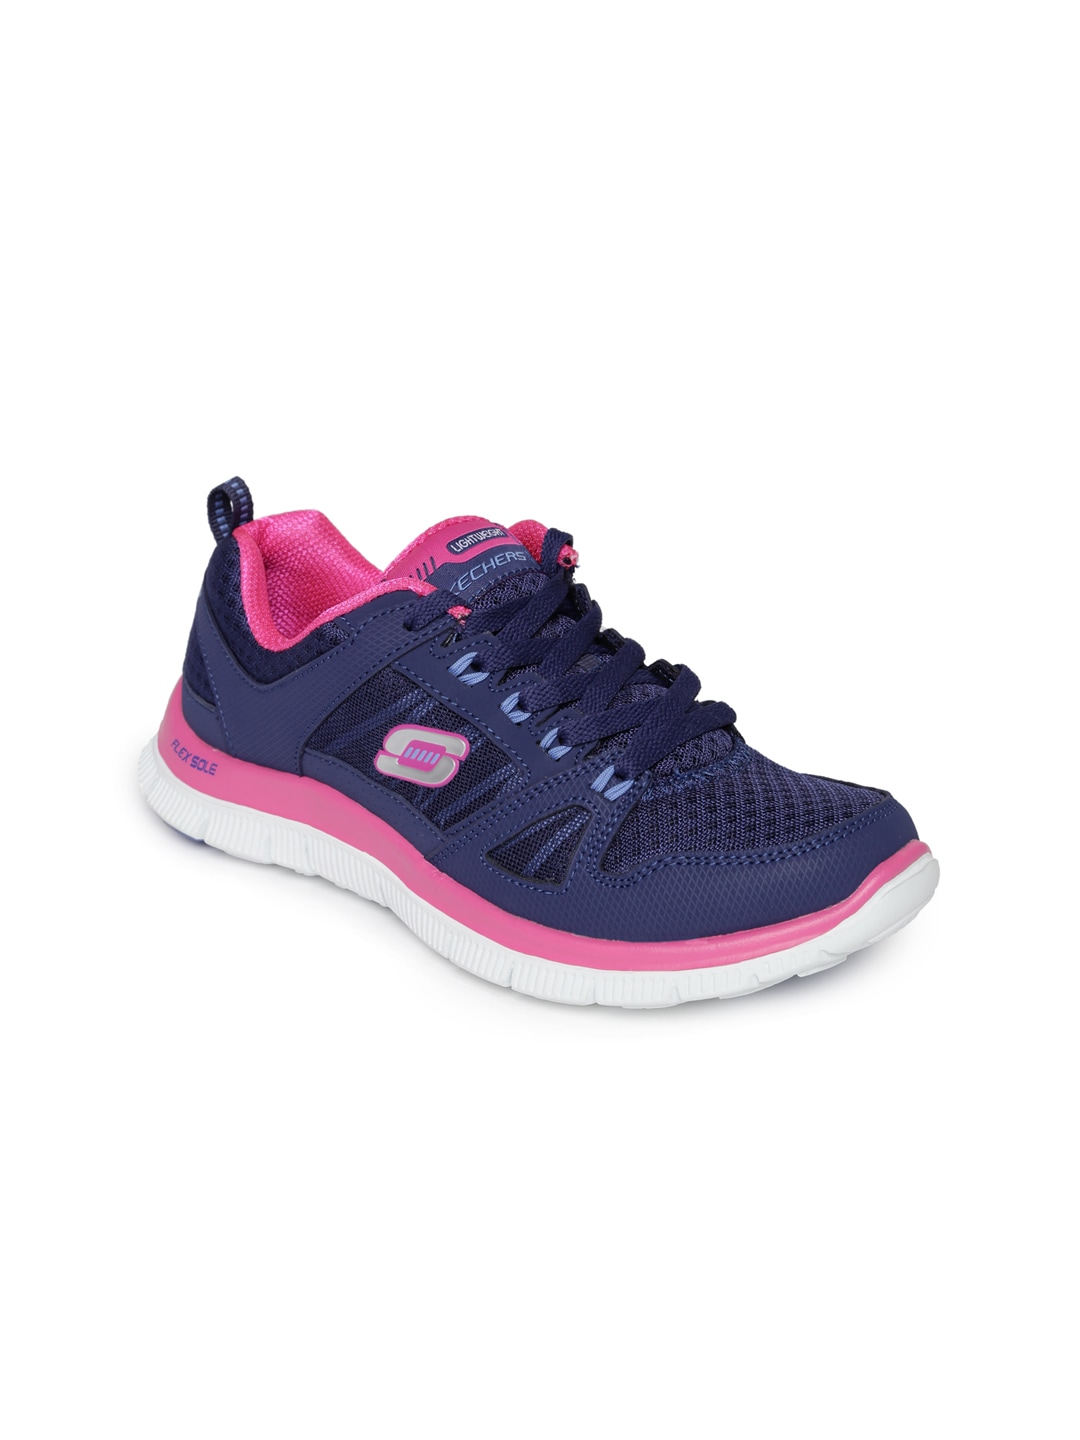 Skechers Casual Womens Shoes